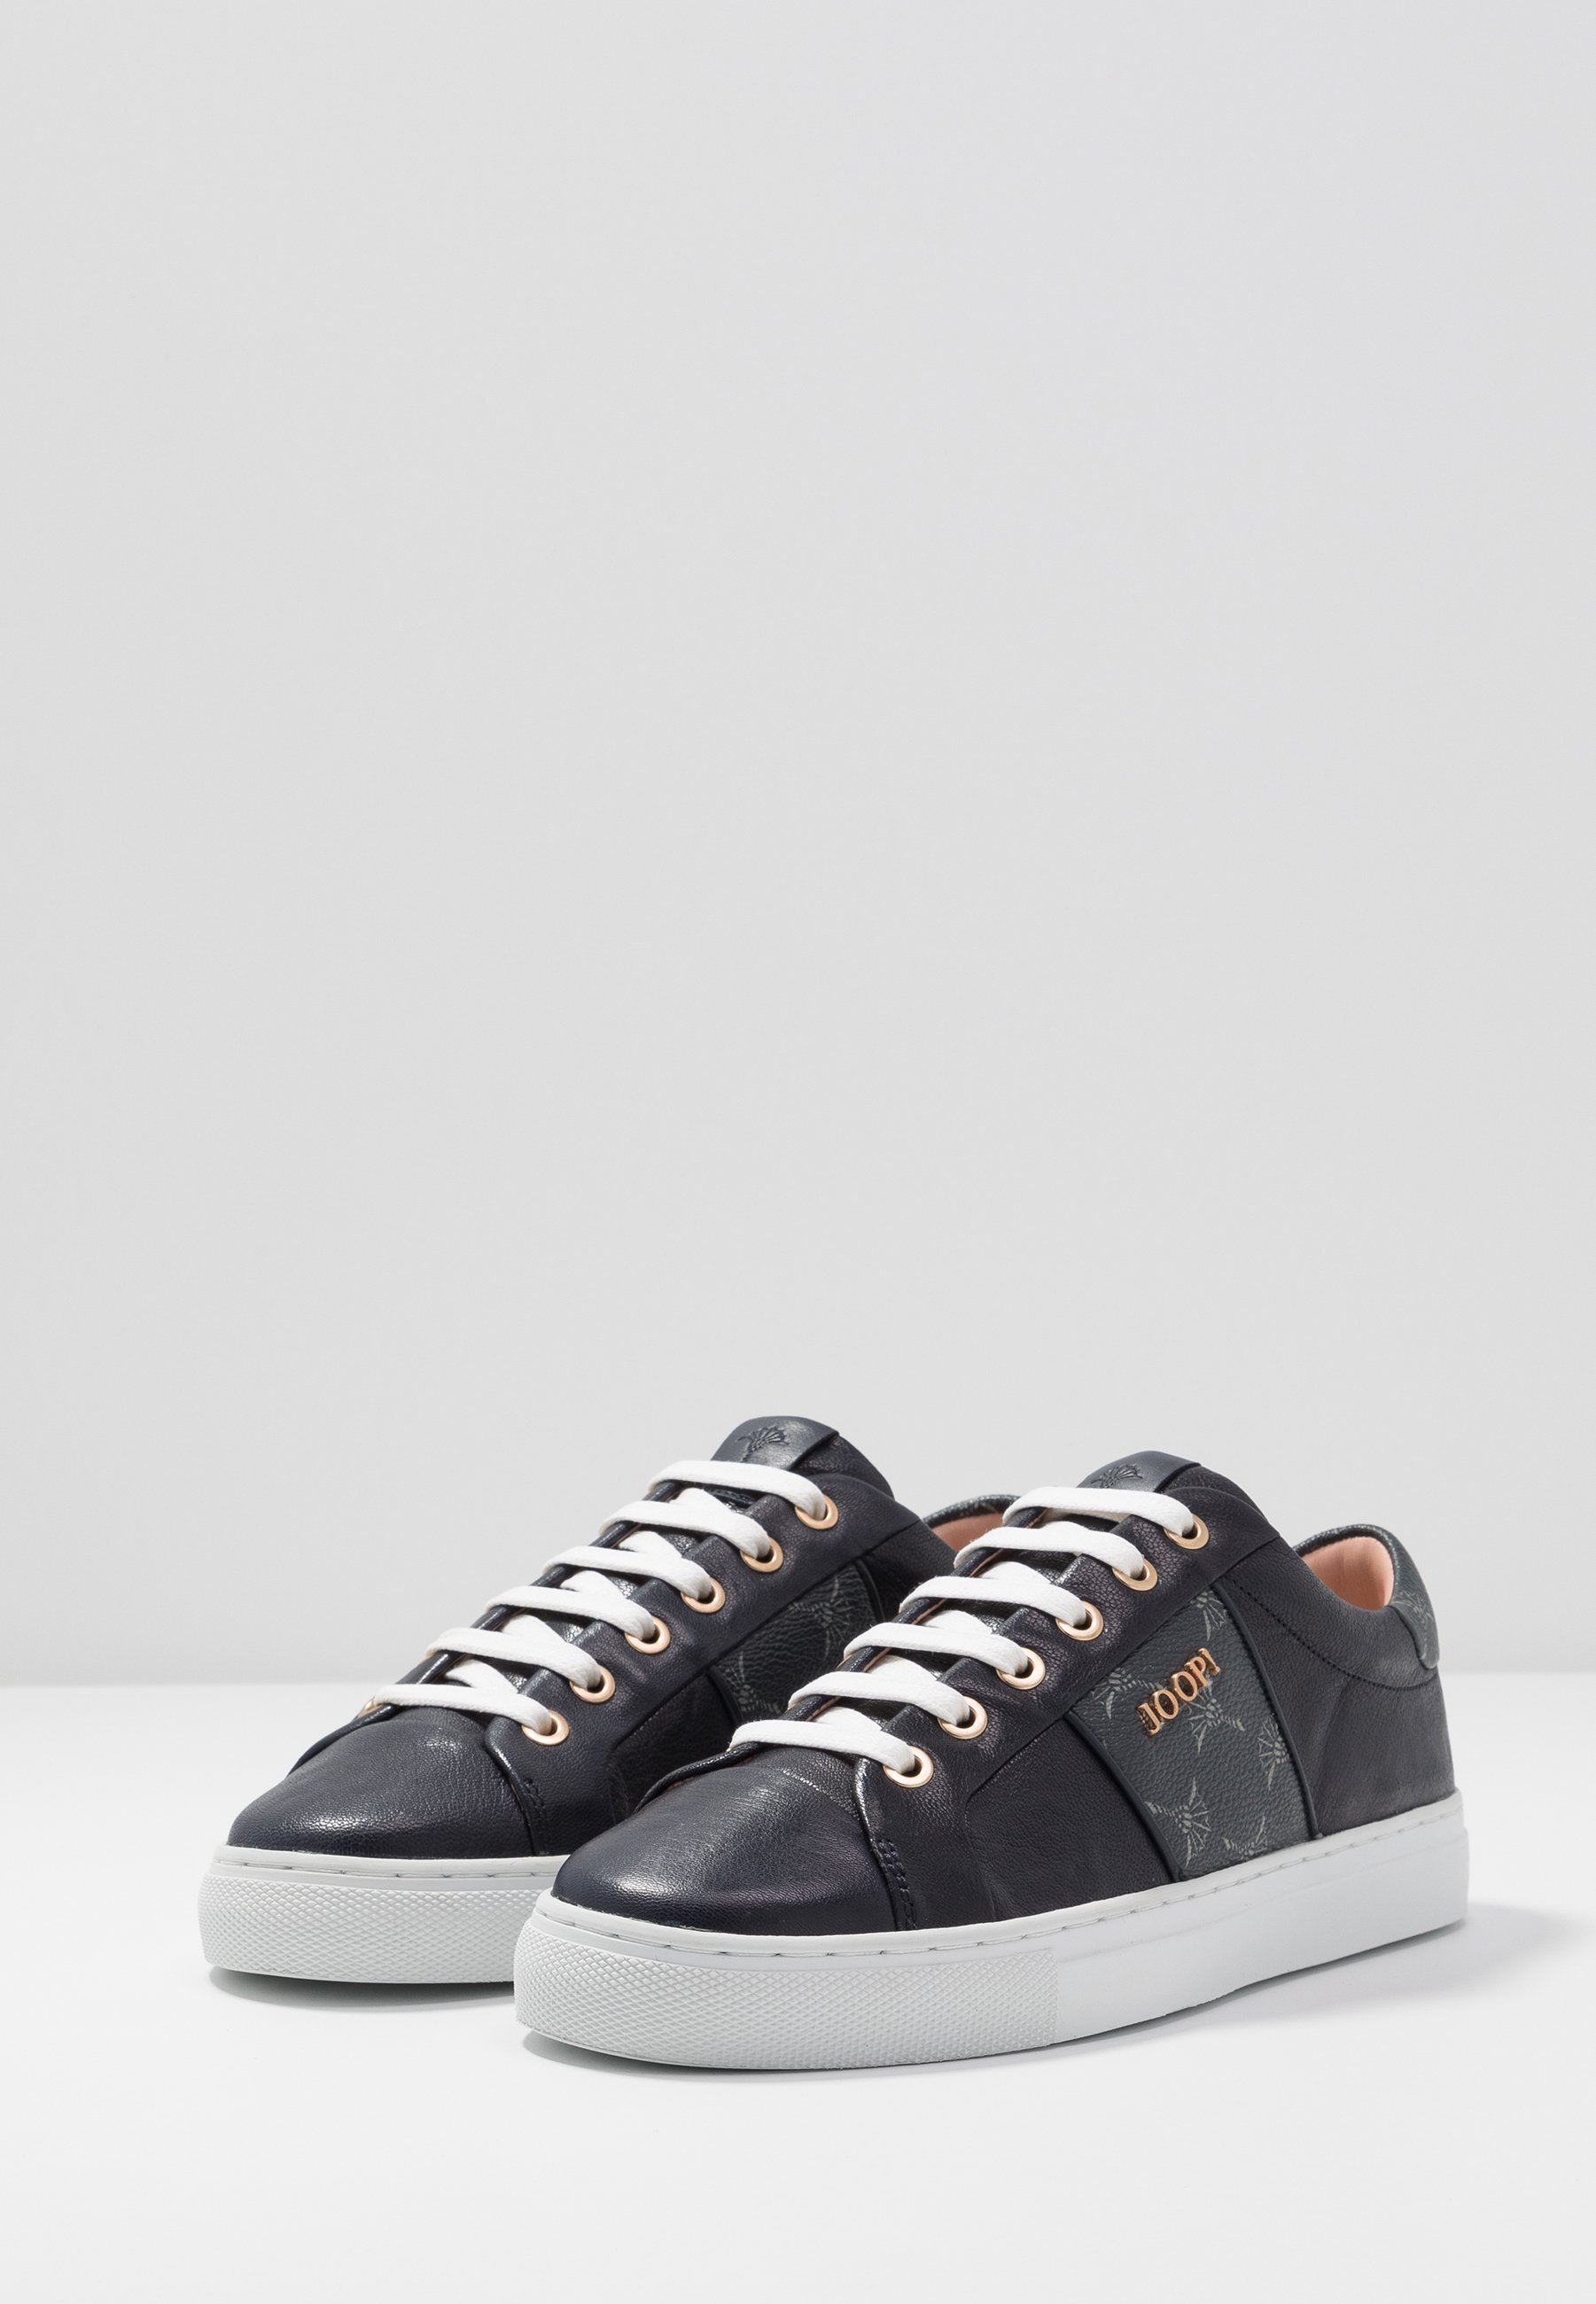 JOOP! CORTINA LISTA - Sneakers - night blue